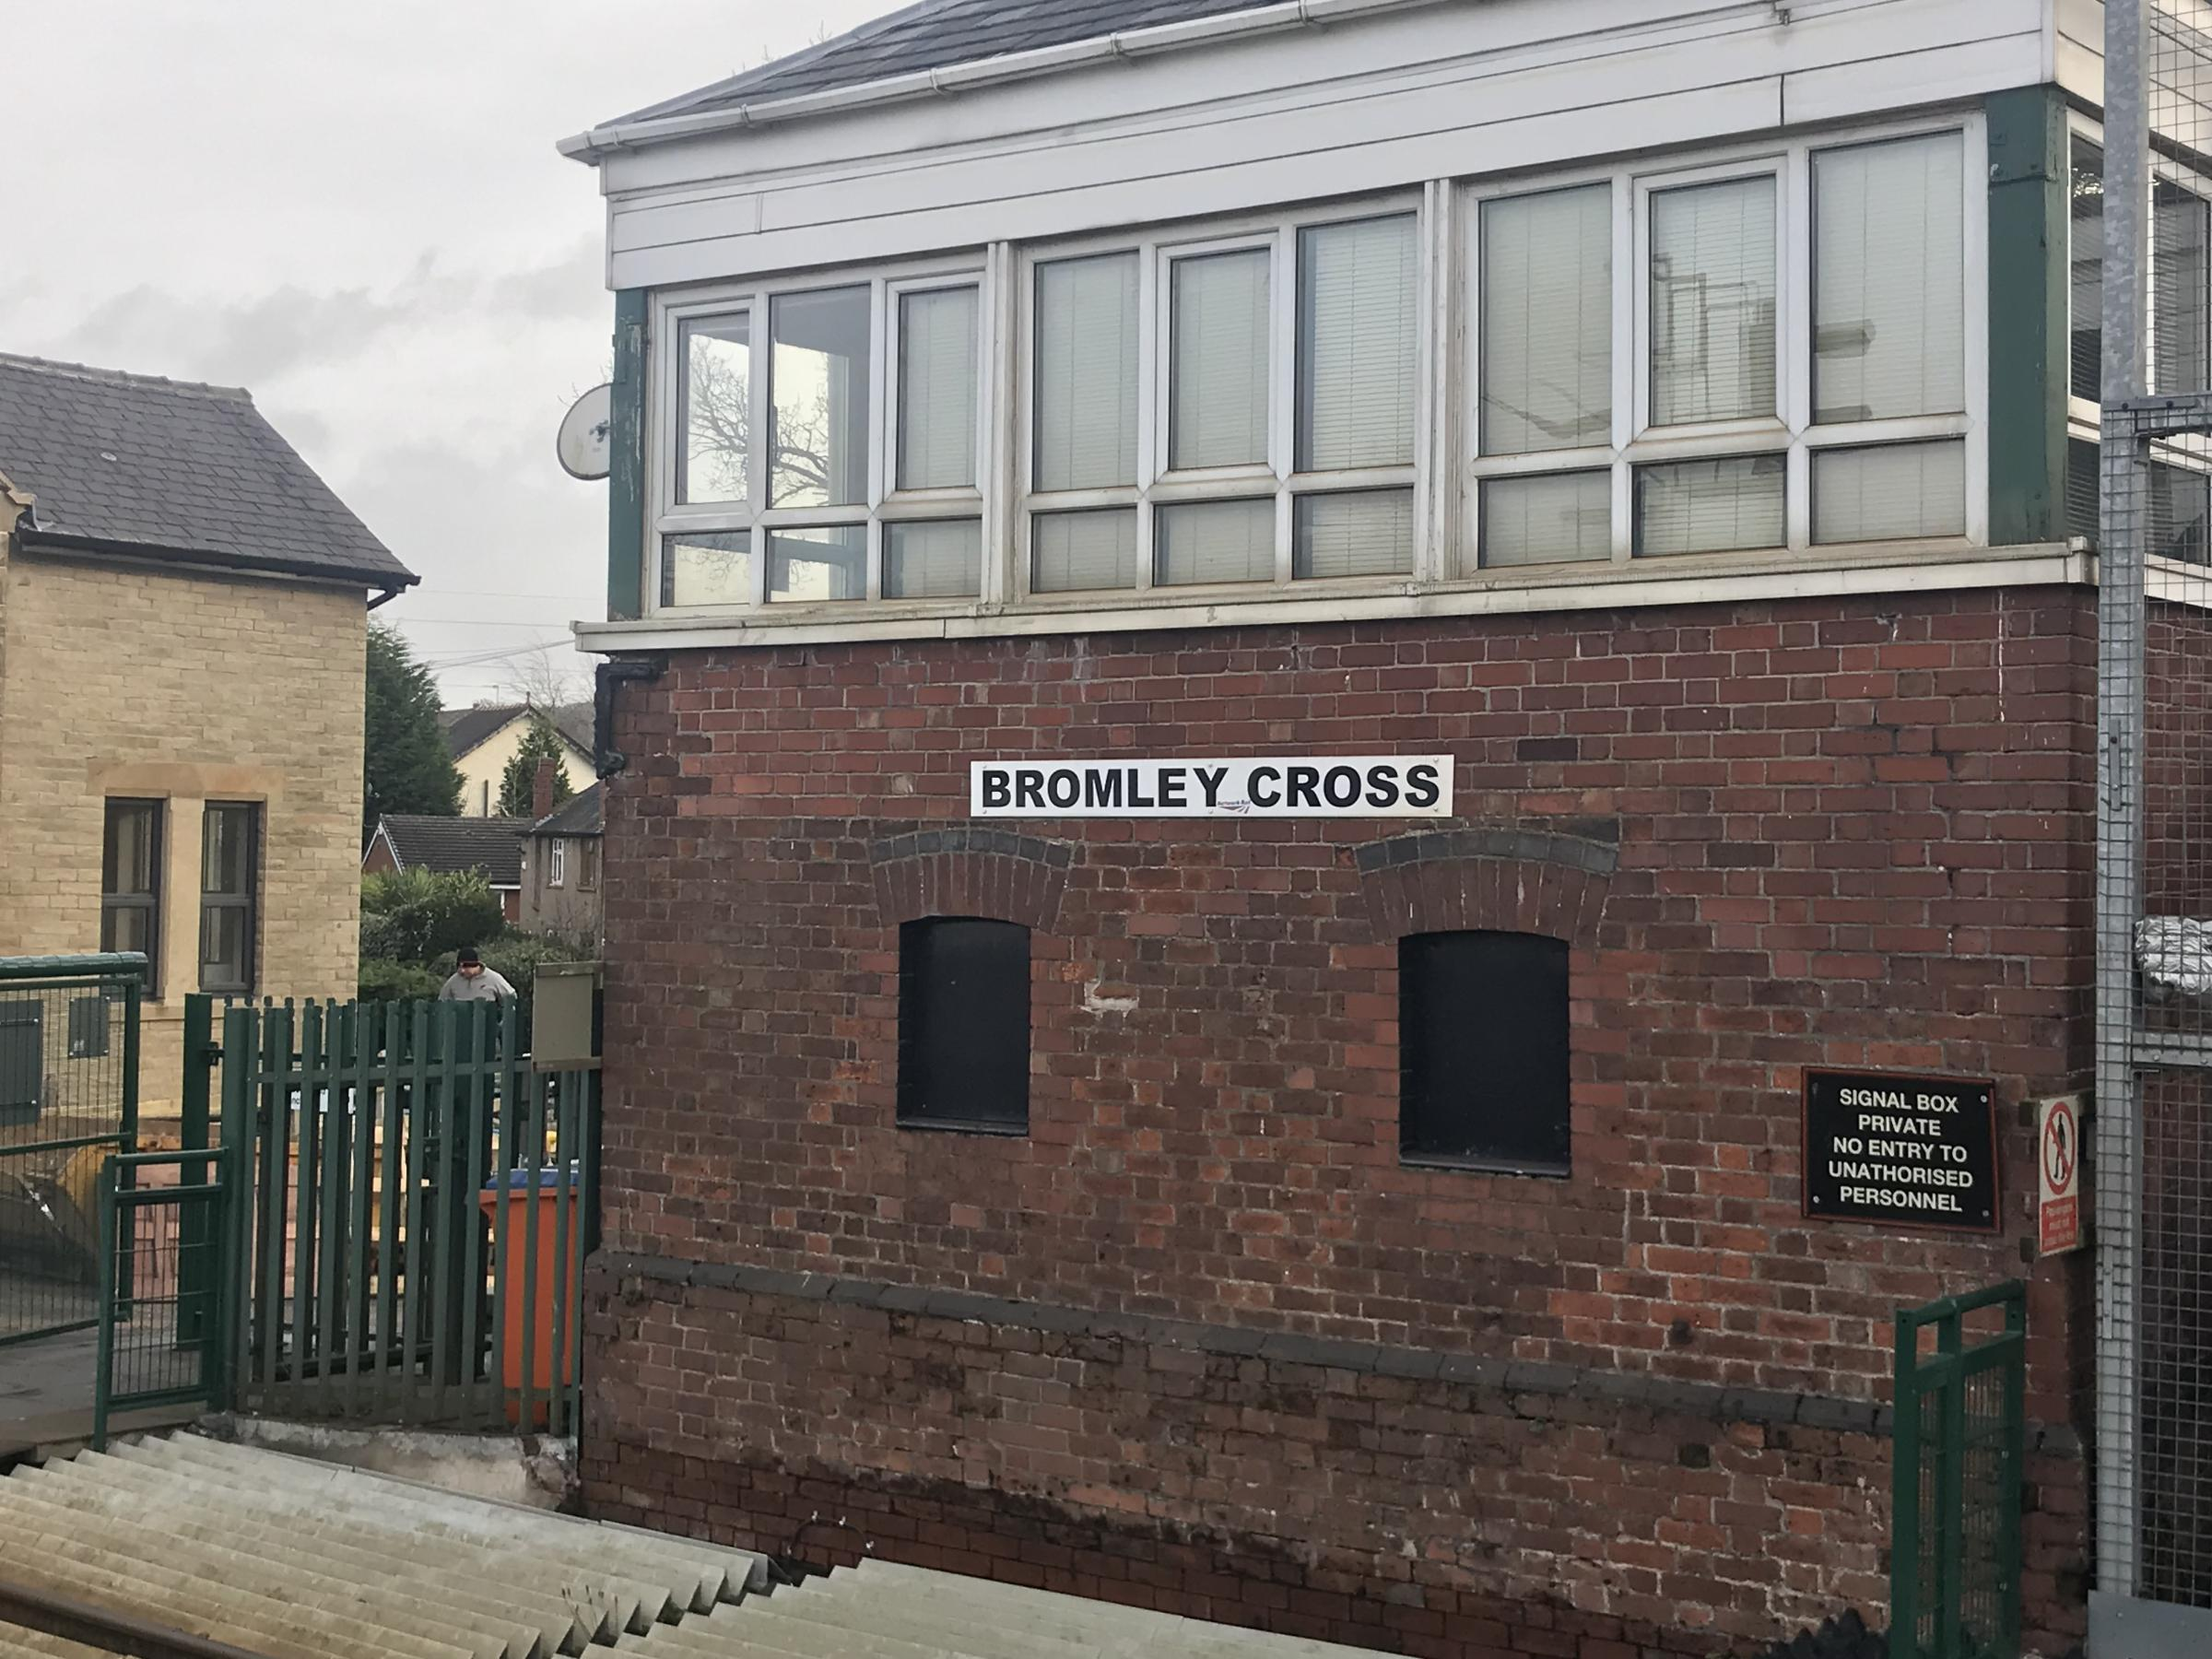 Bromley Cross station